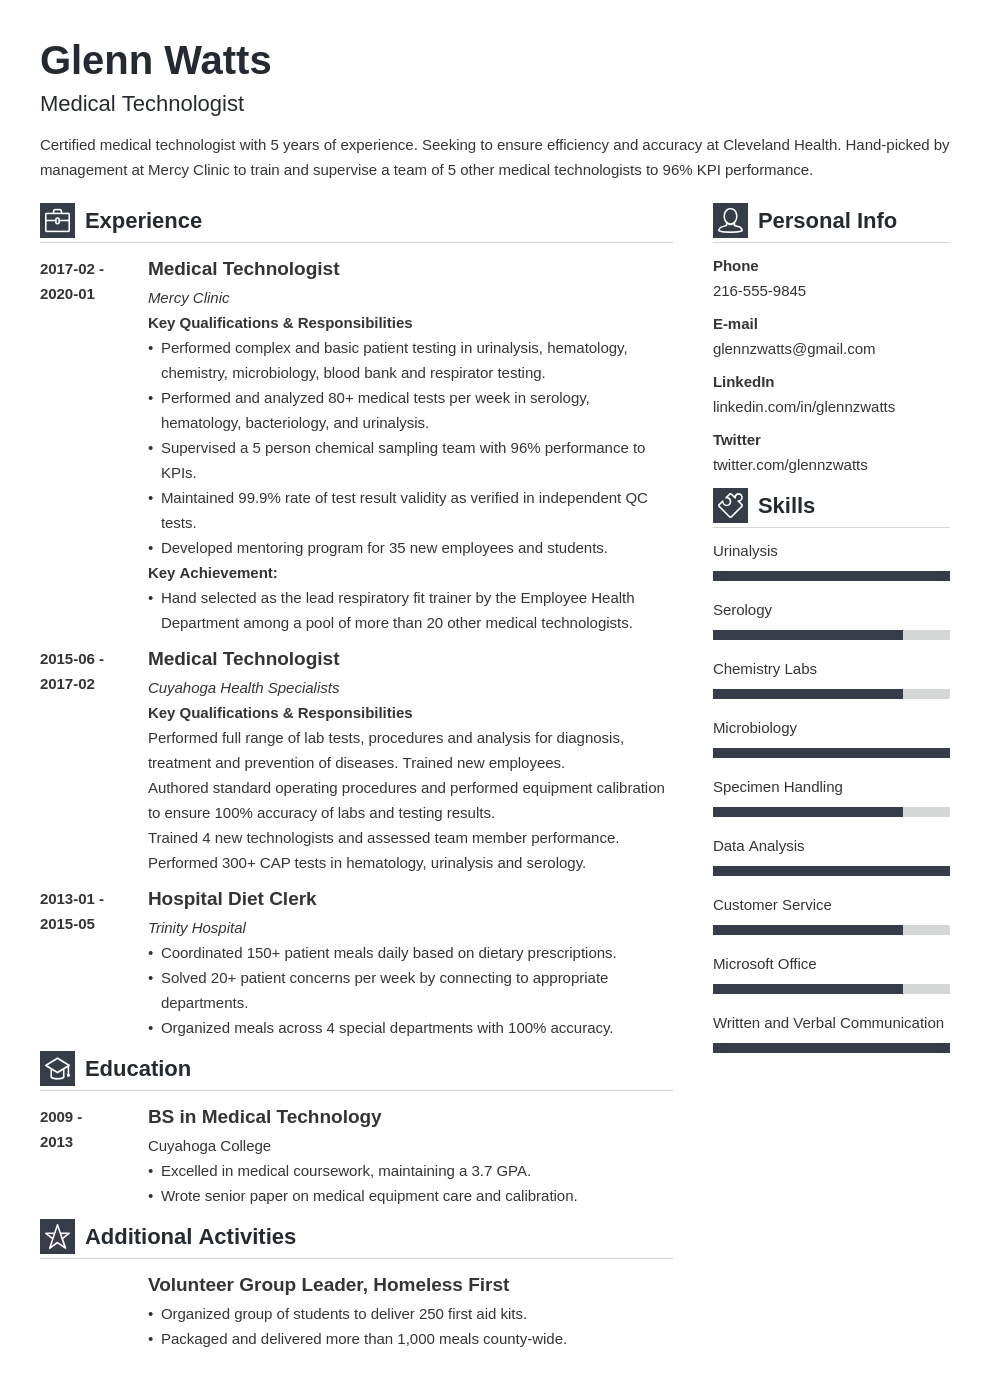 medical technologist resume example template vibes